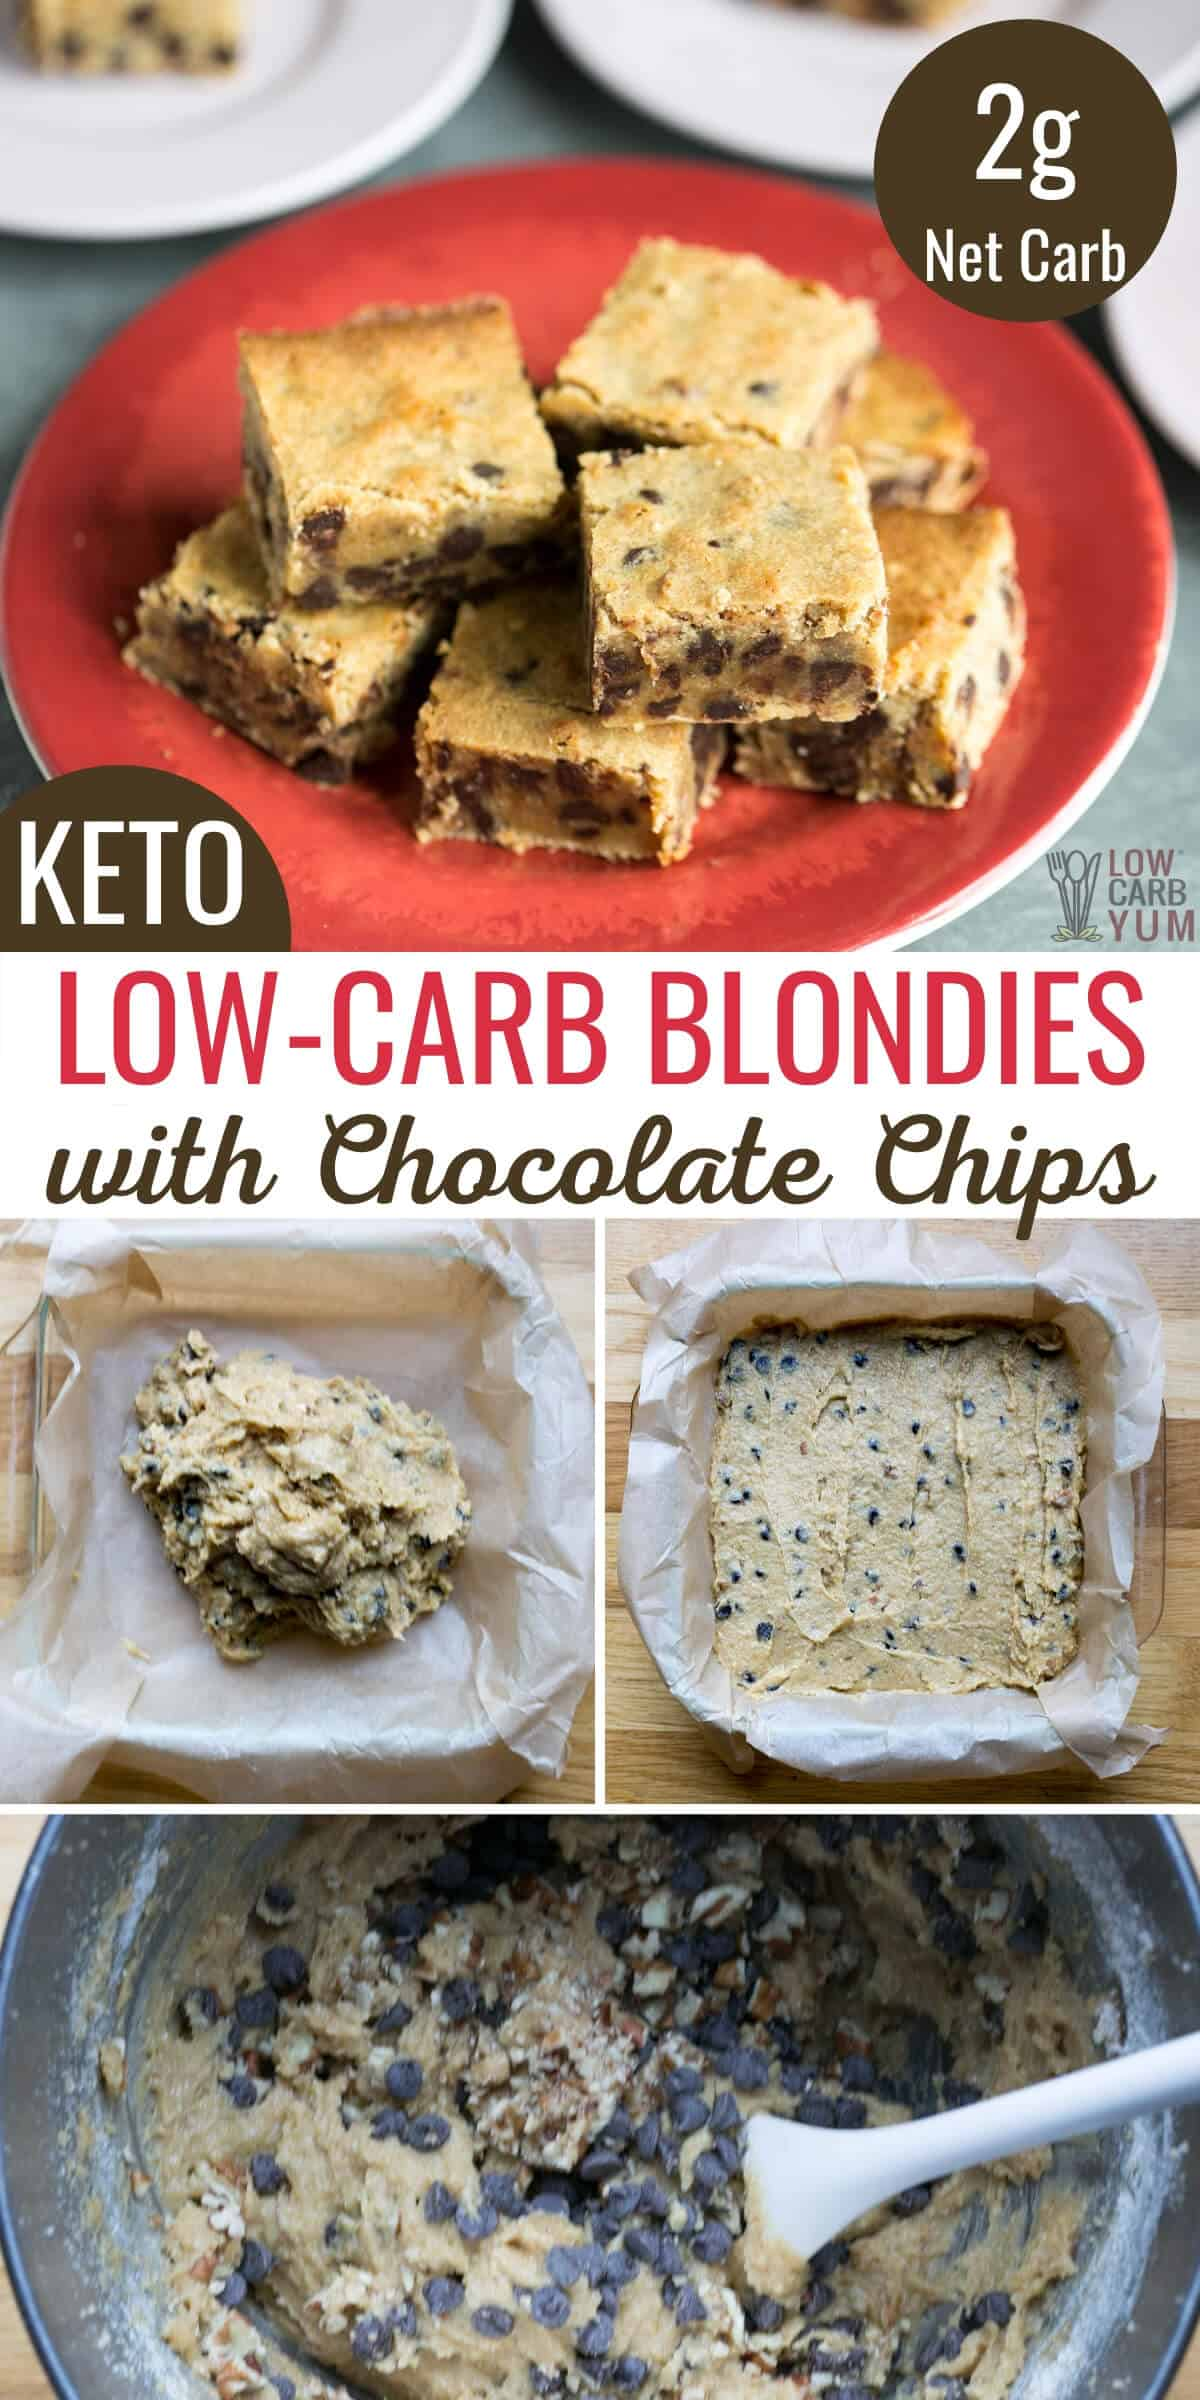 low-carb blondies with chocolate chips